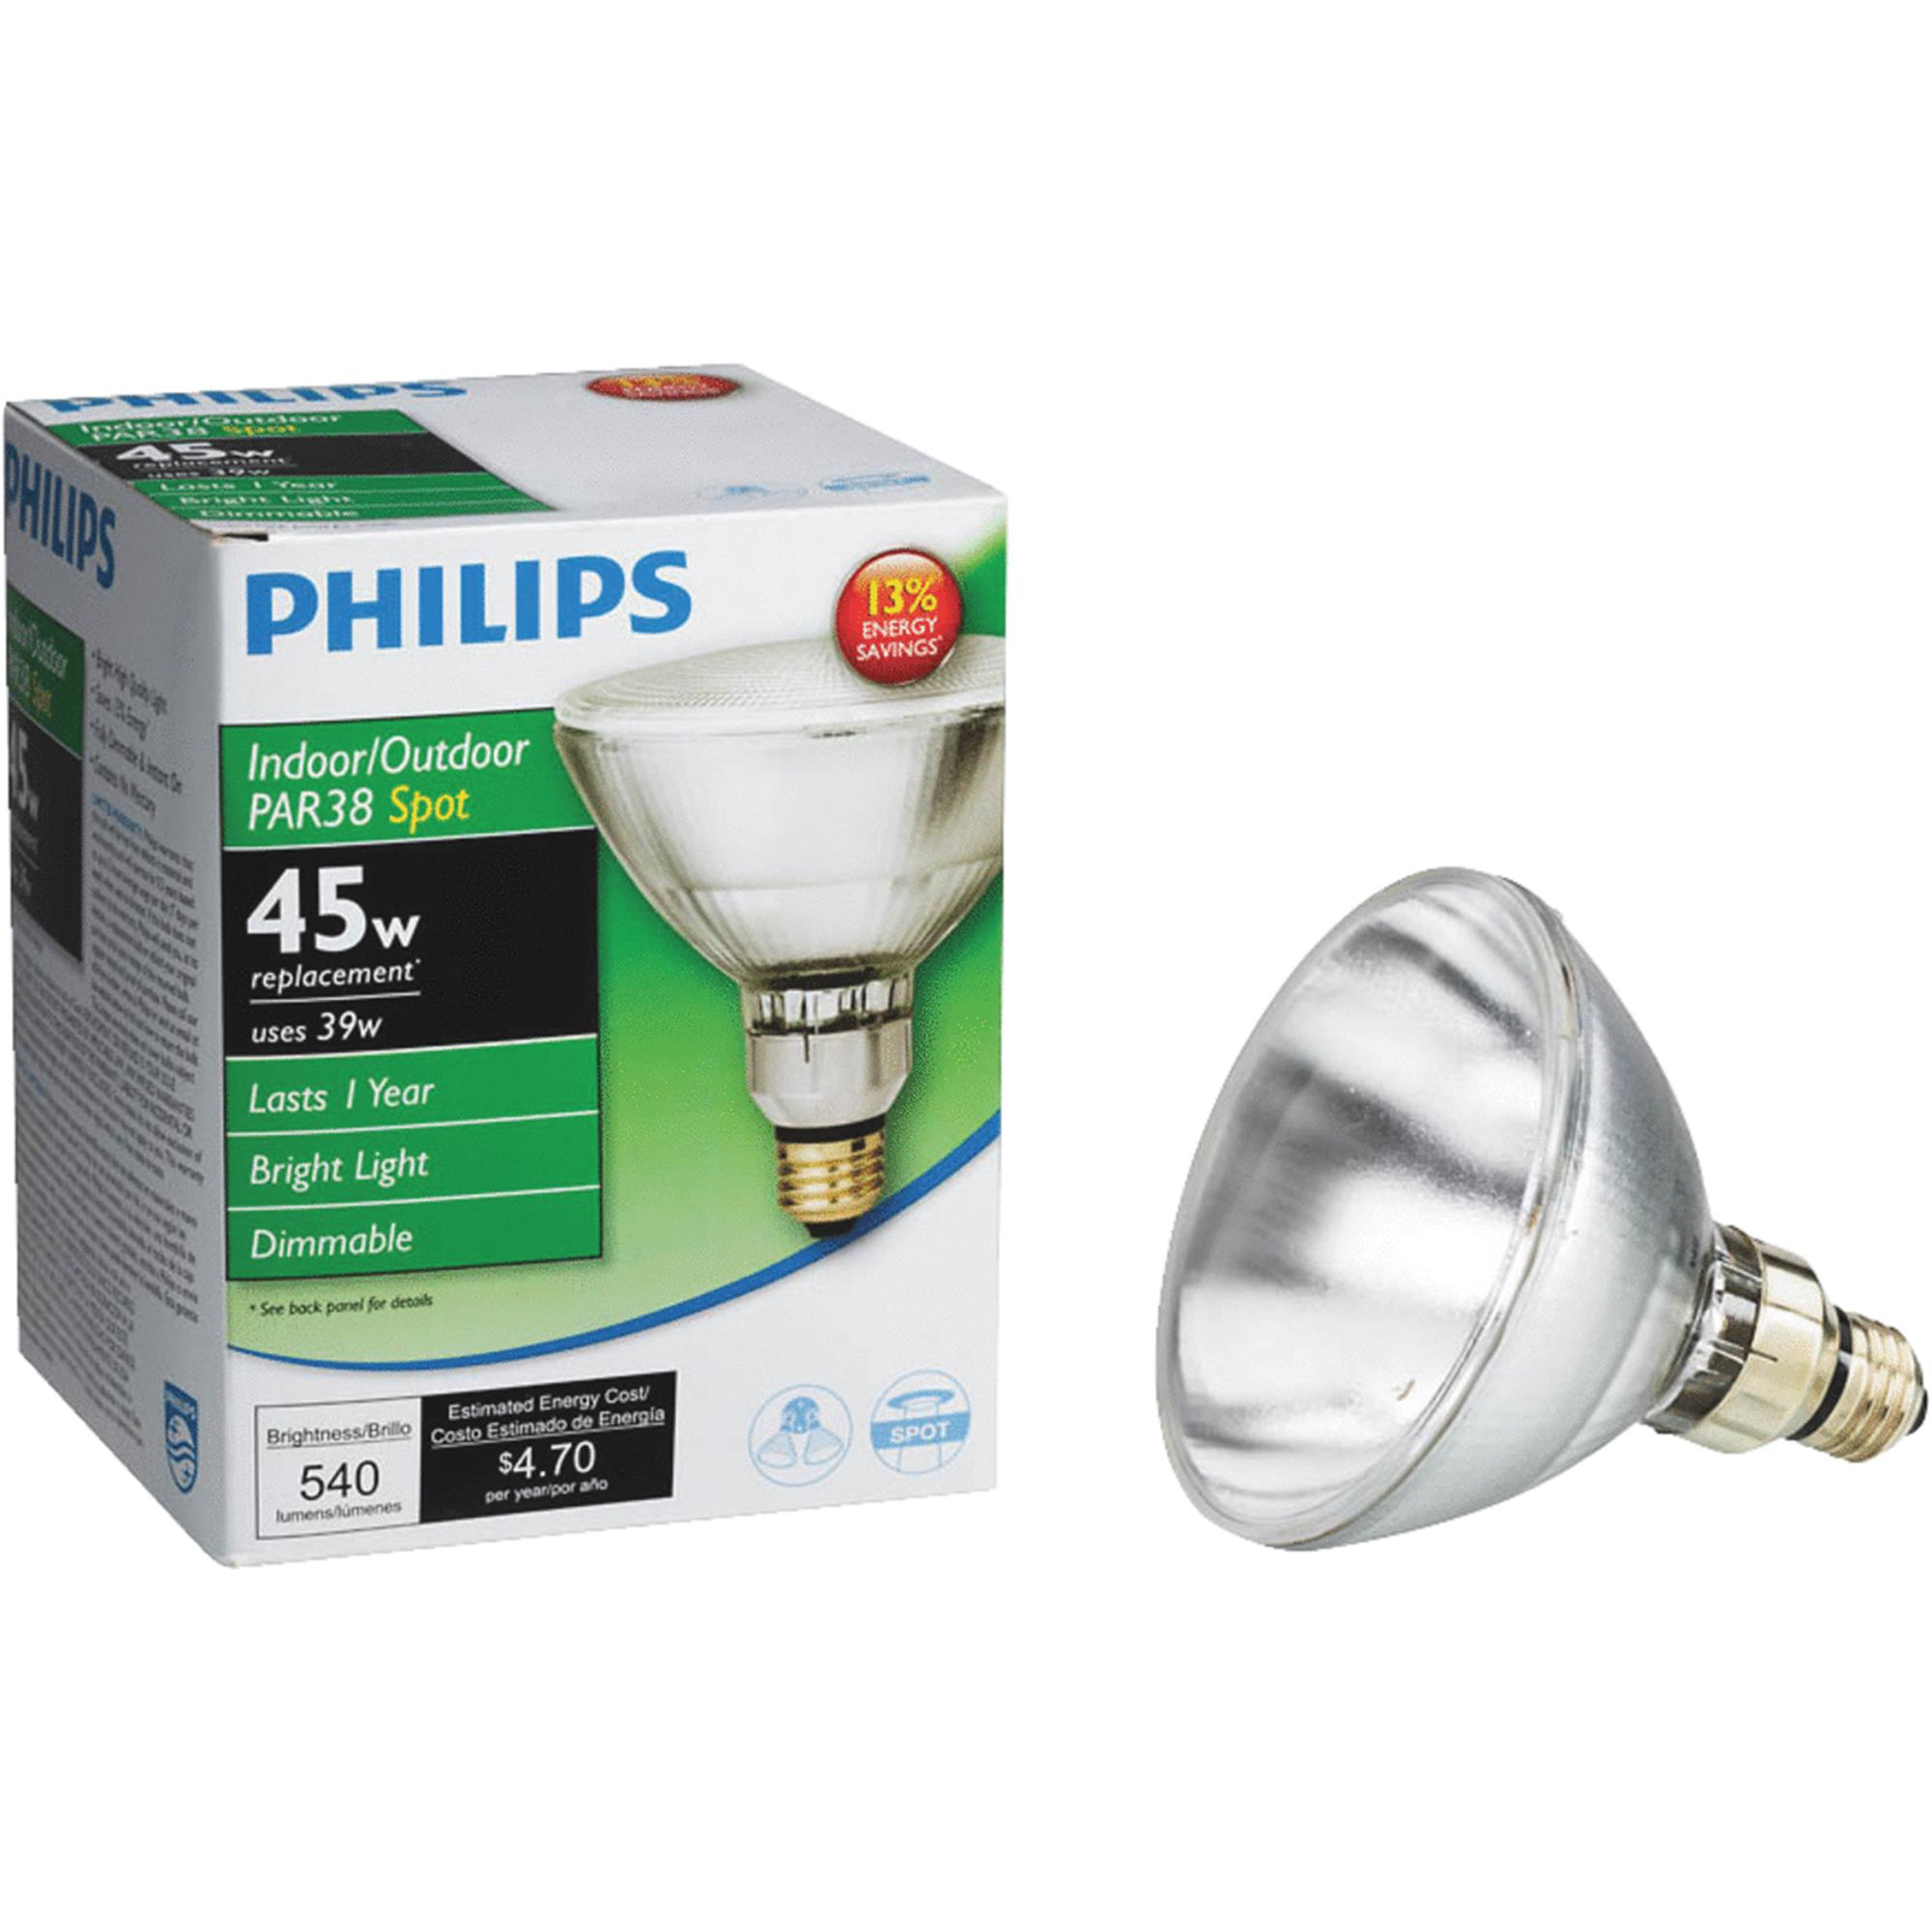 Halogen Spotlight Bulbs Philips Ecovantage Par38 Halogen Spotlight Light Bulb